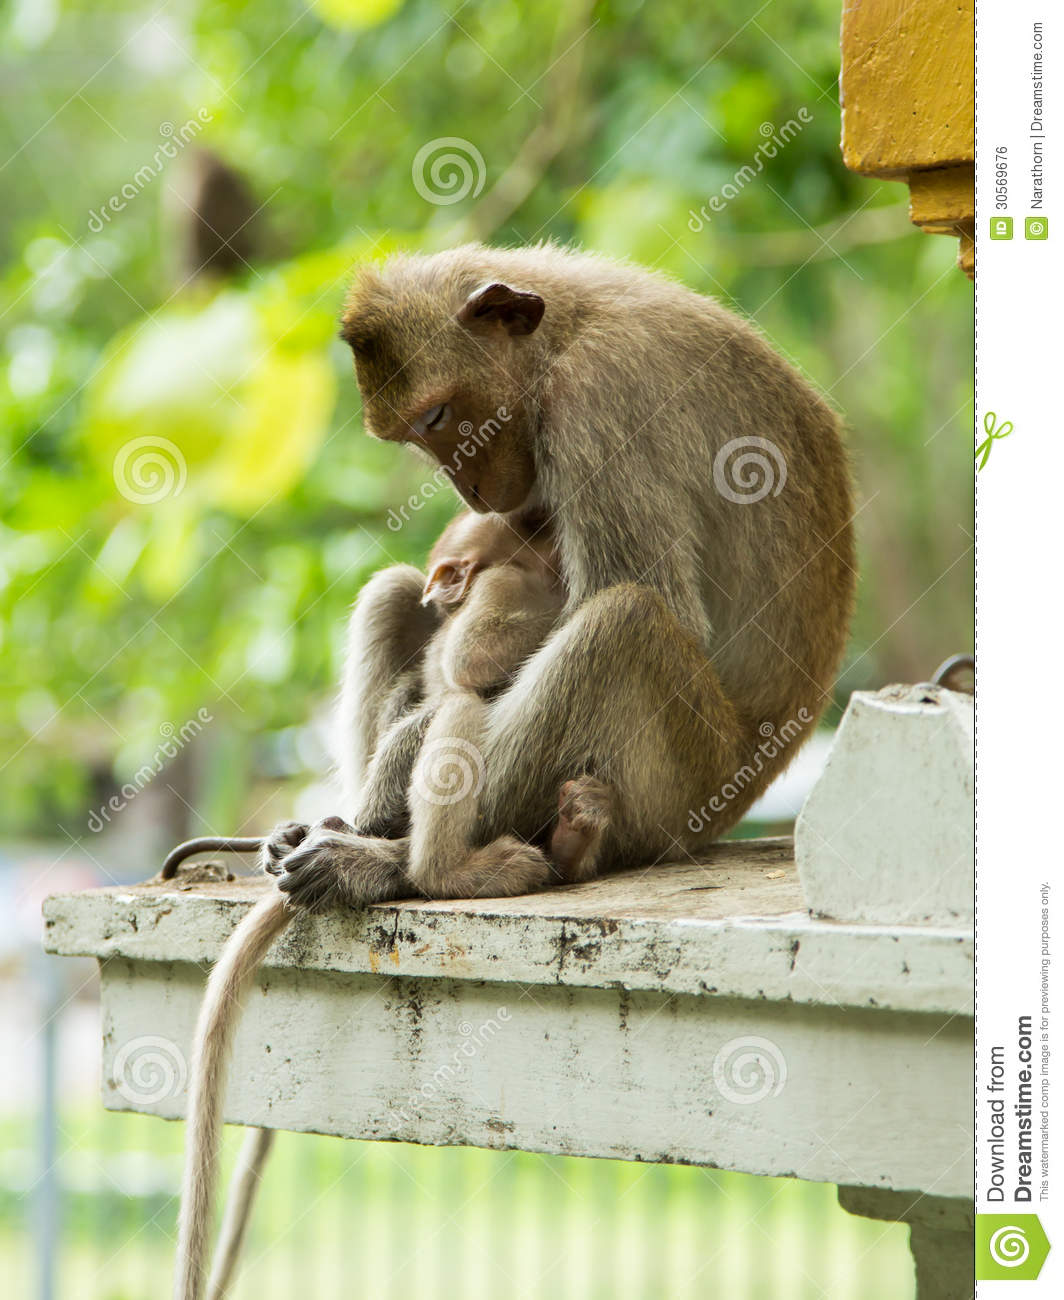 Two monkeys hugging drawing - photo#28